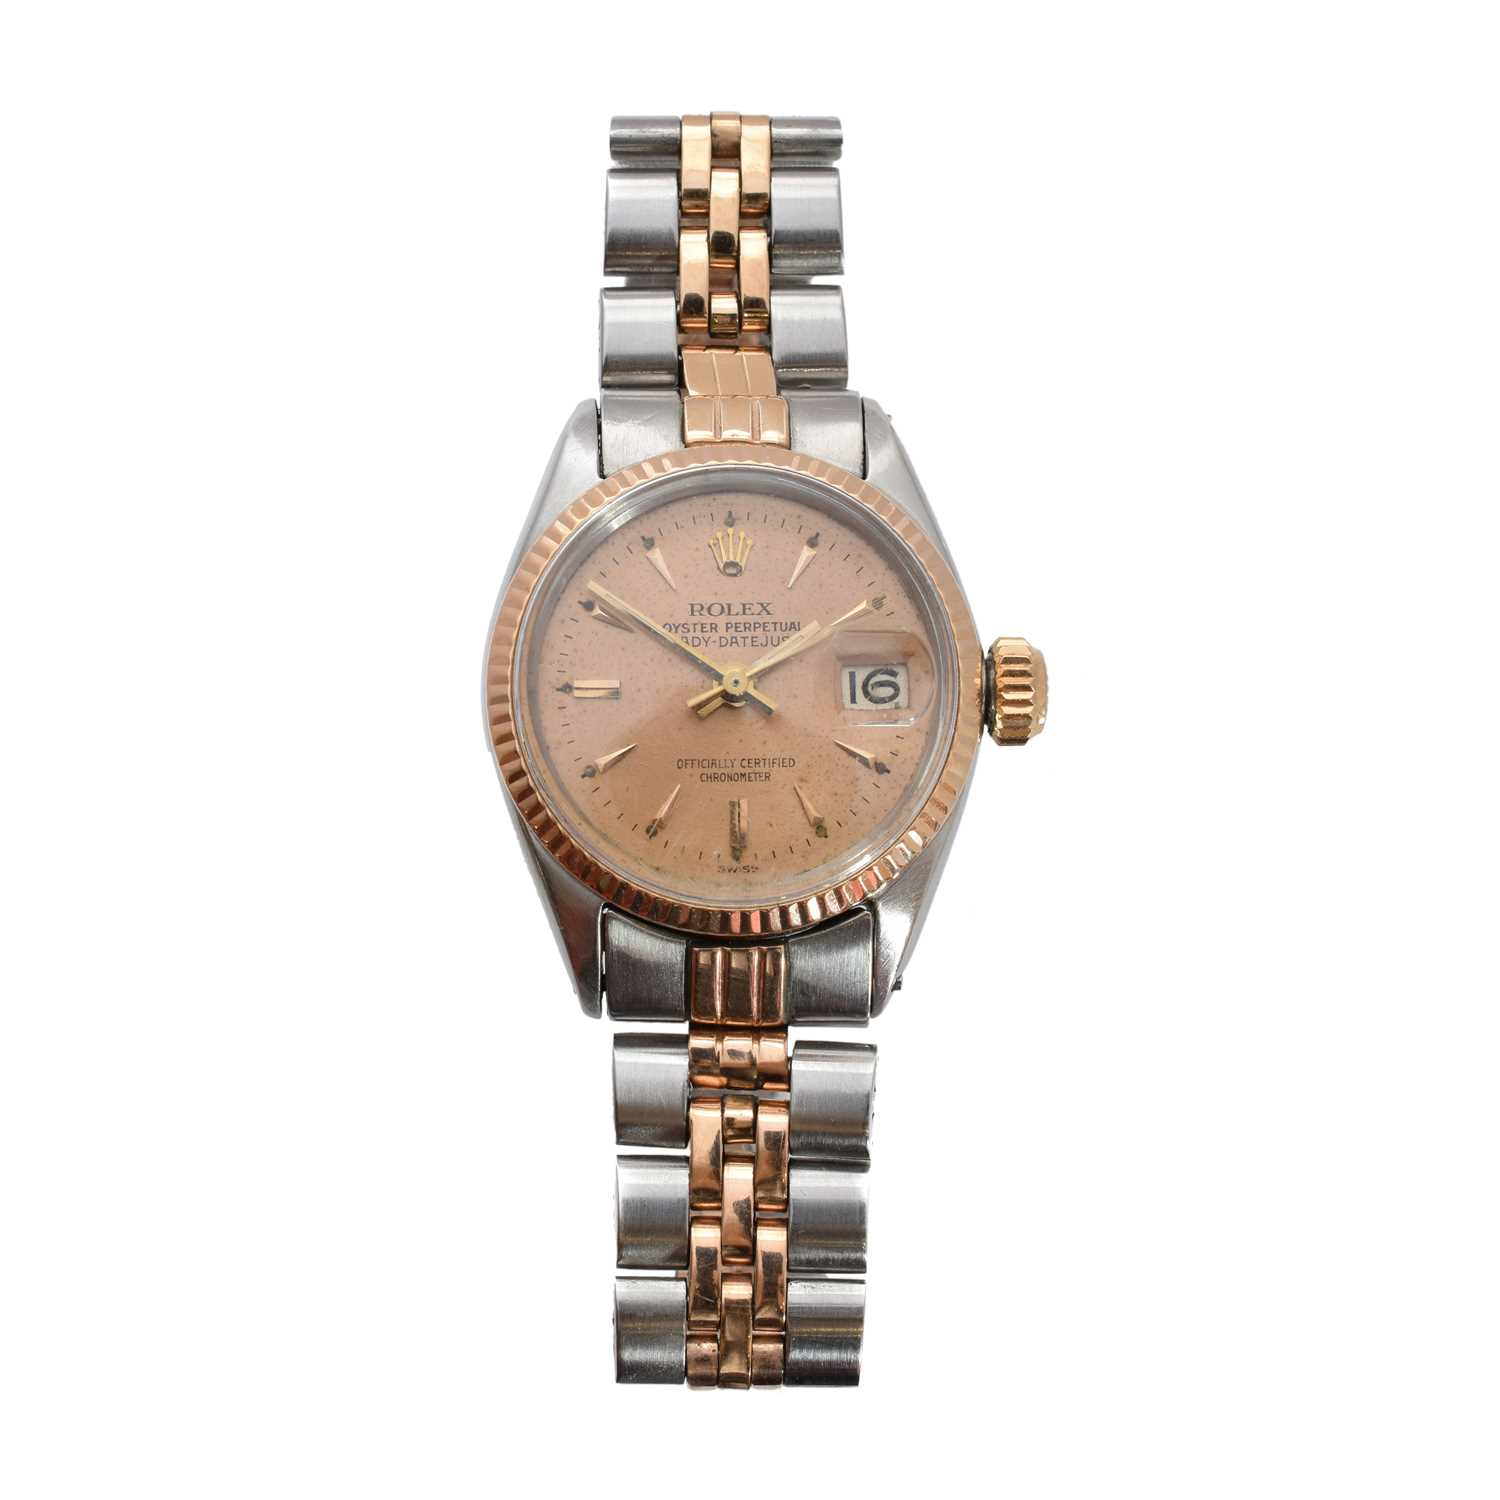 Lot 262-A ladies steel and gold Rolex Oyster Perpetual Lady Datejust wristwatch